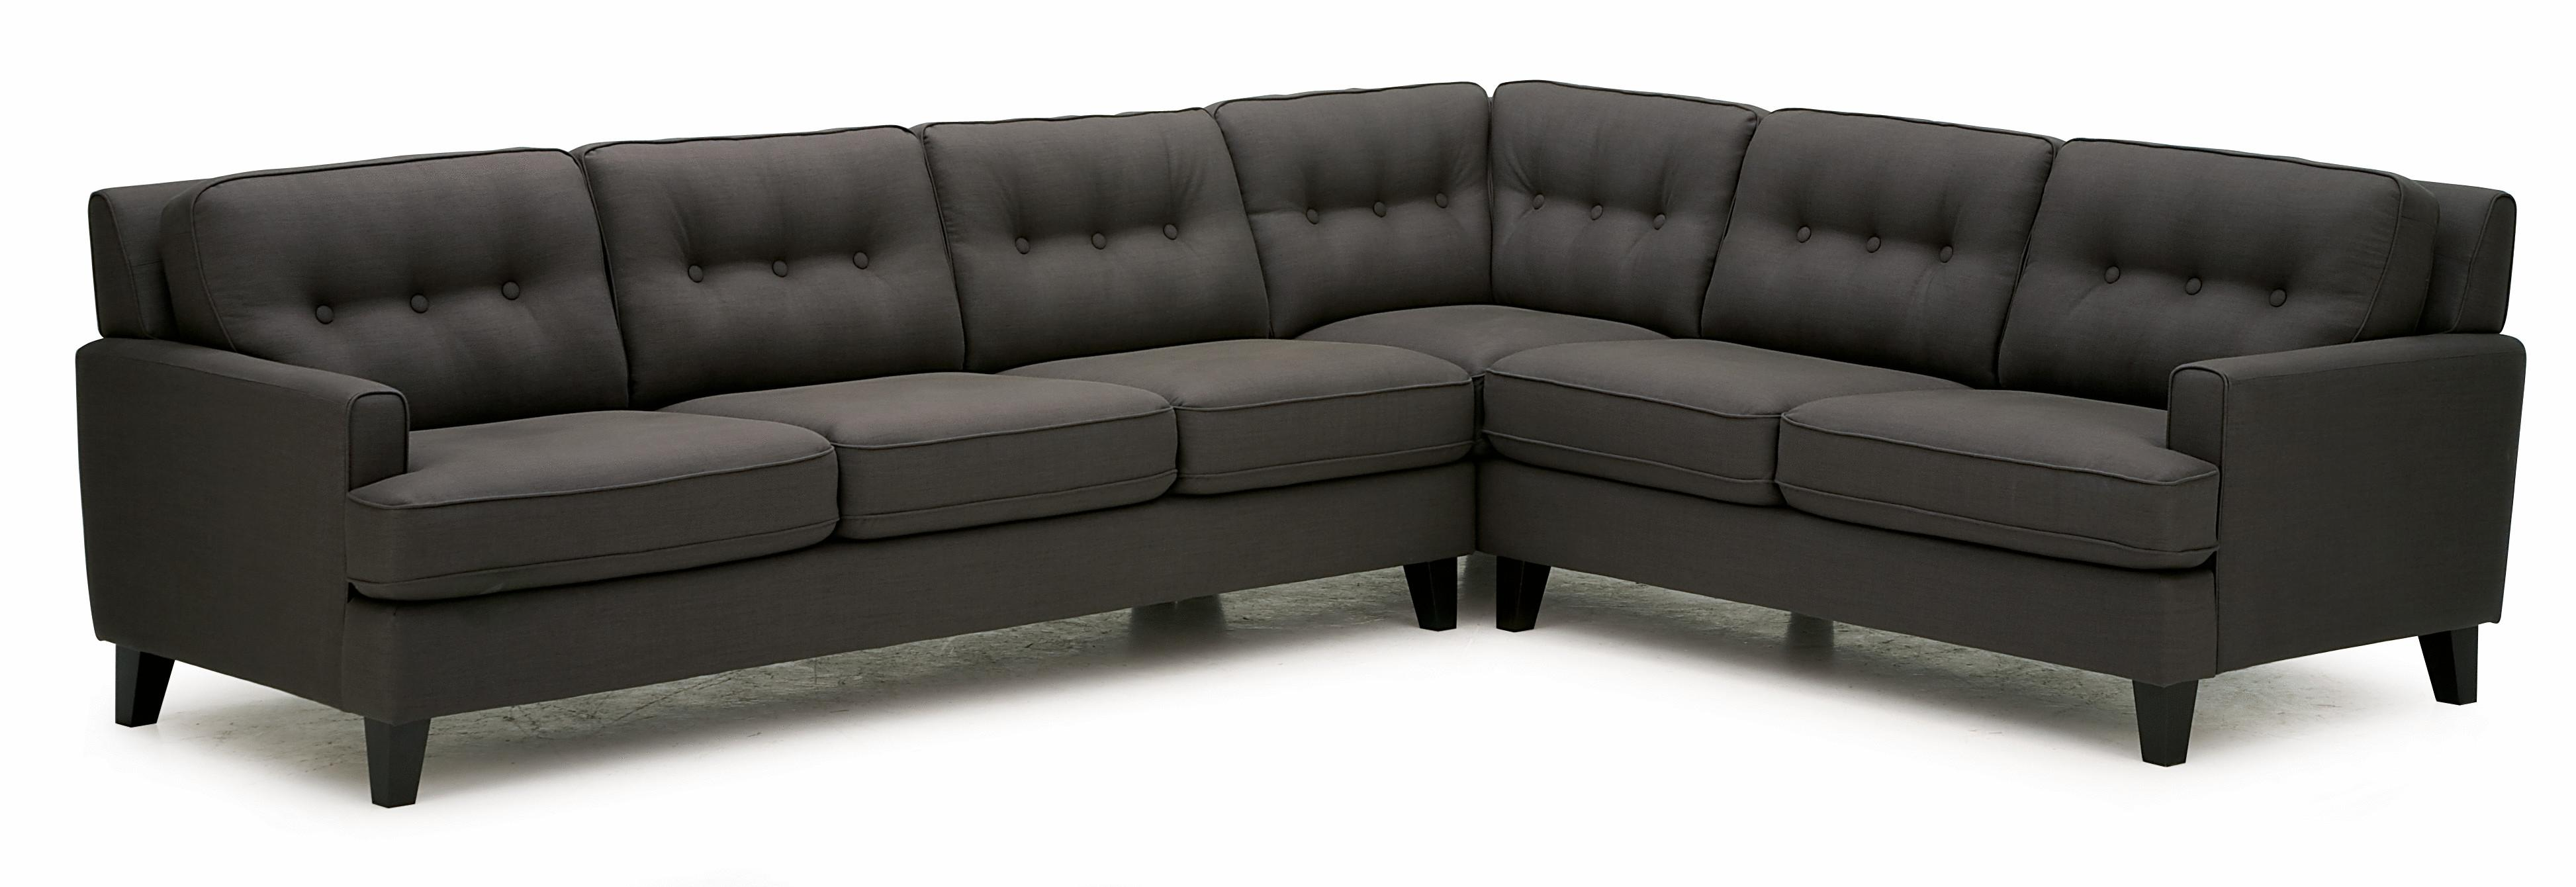 Two Piece Sectional Sofa with LHF Sofa Split